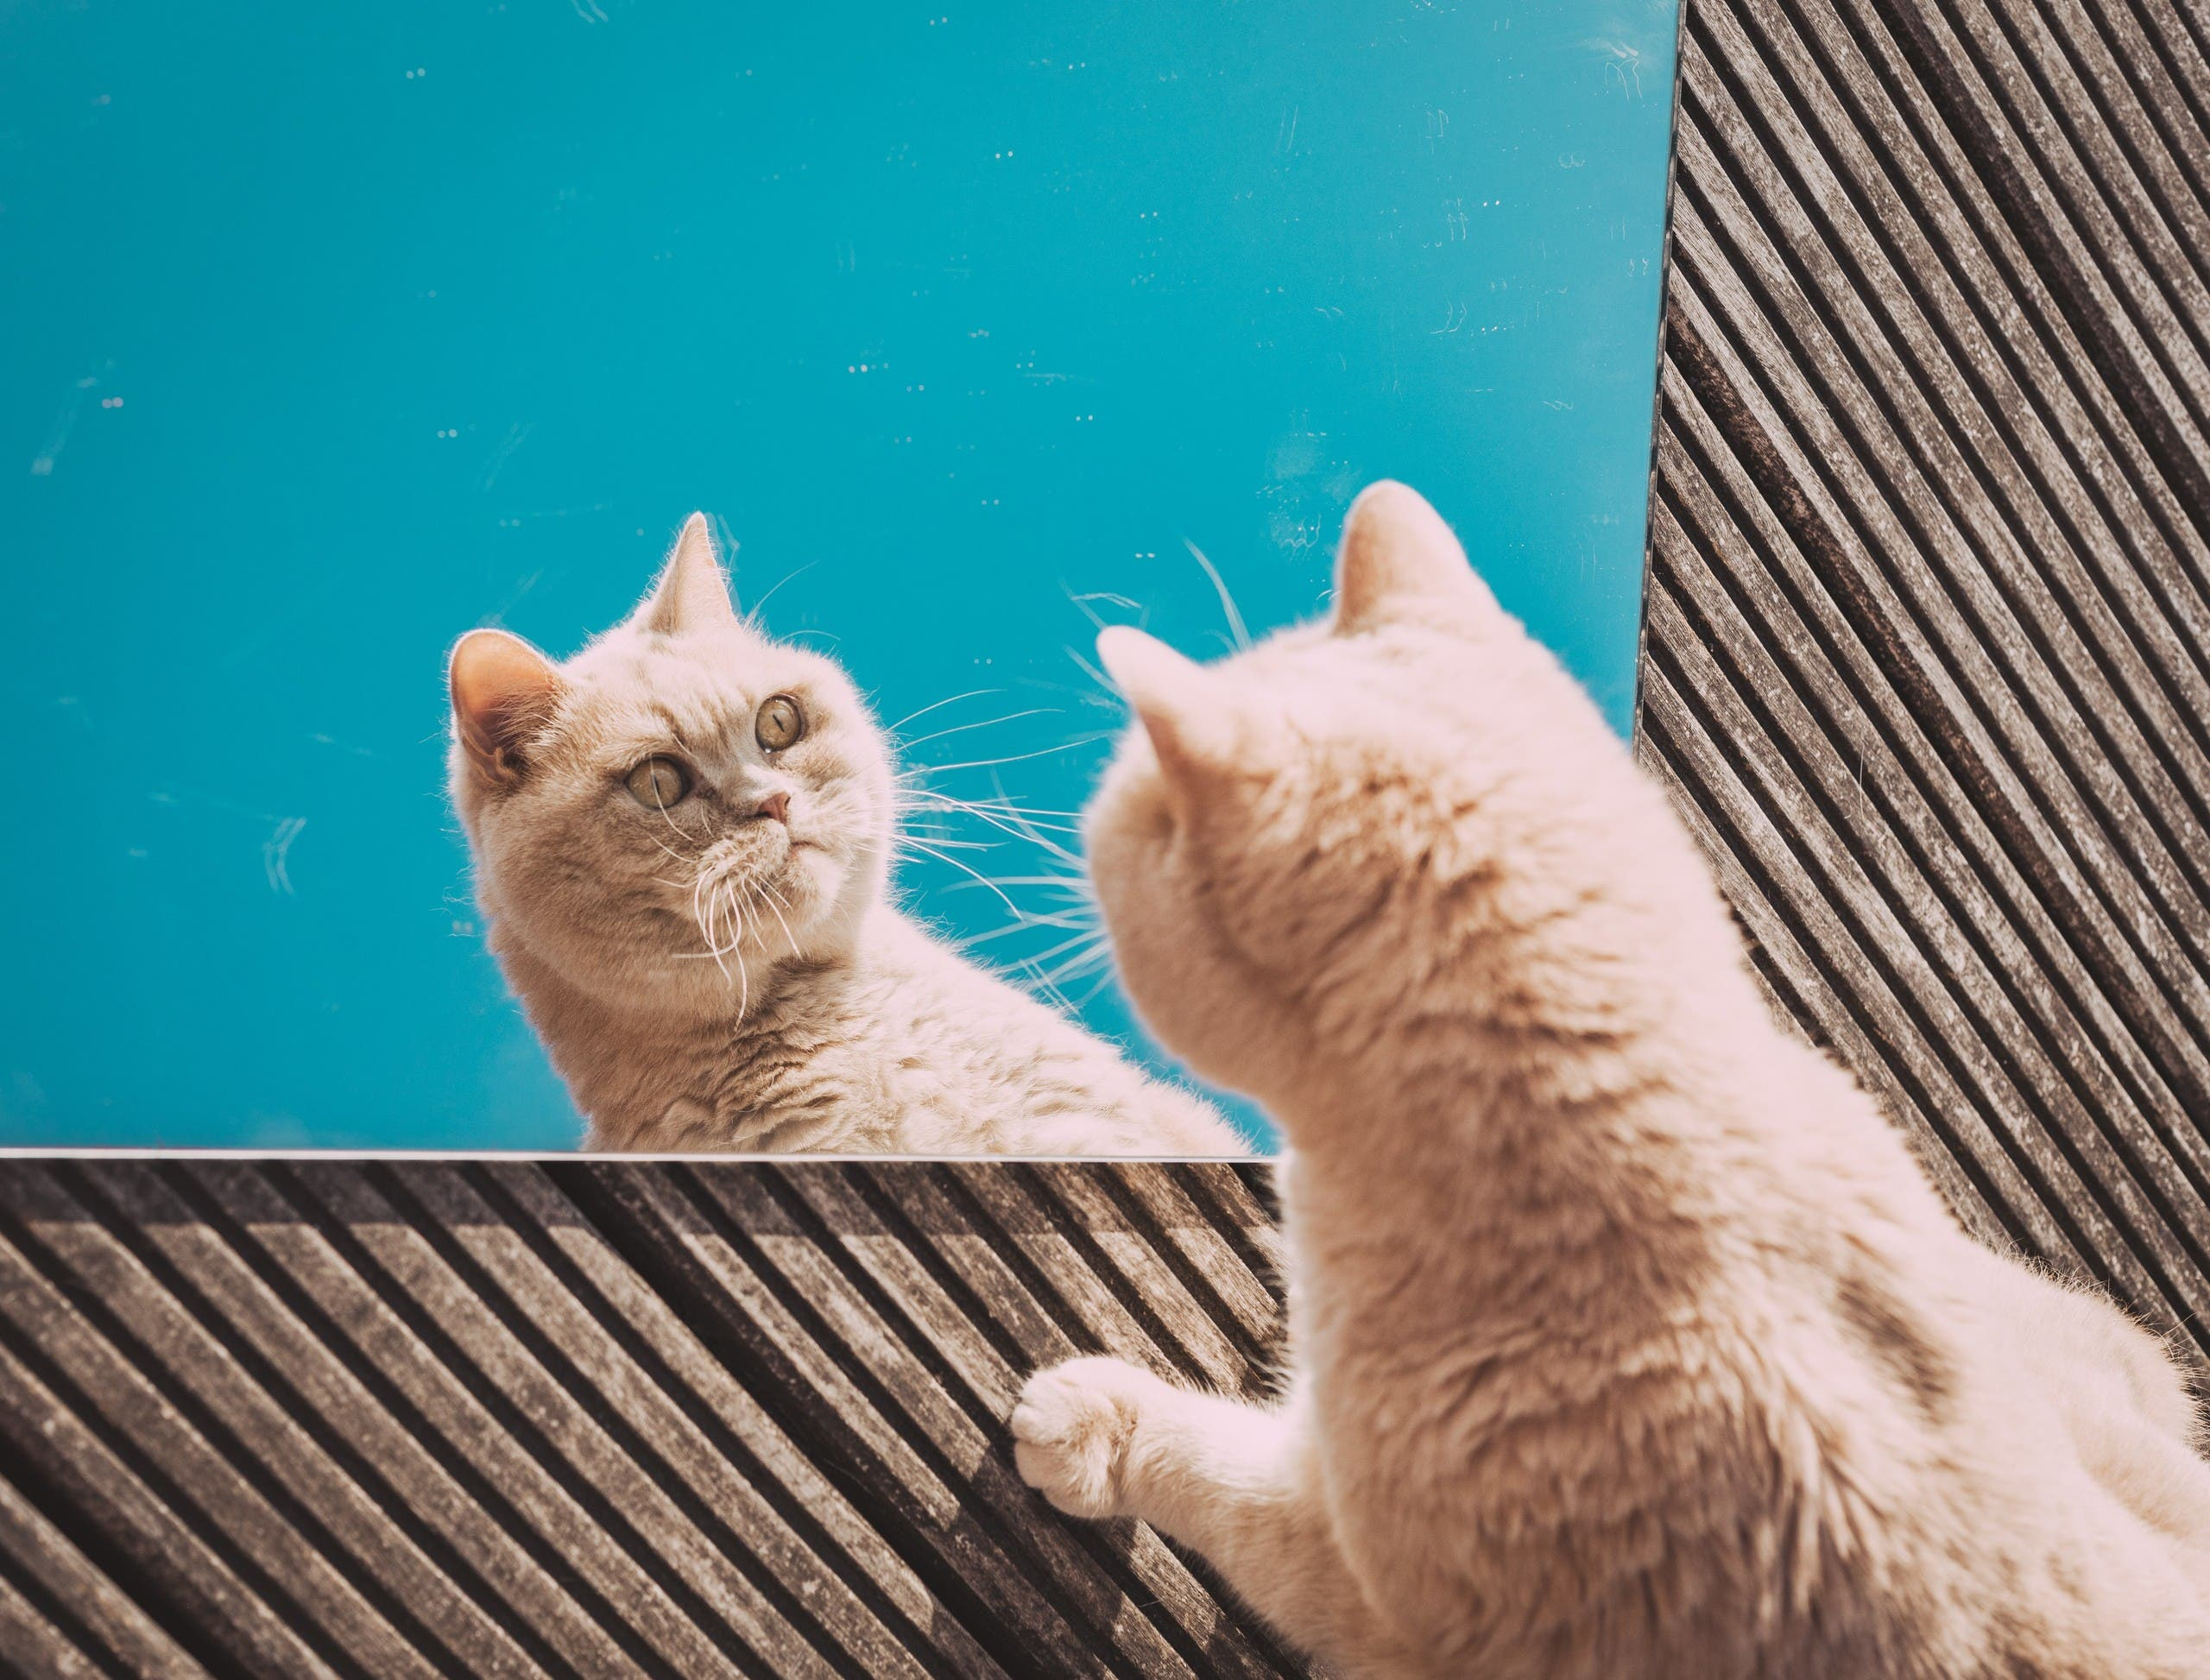 A cat staring at its reflection in a mirror. (Unsplash, Eduard Delputte)